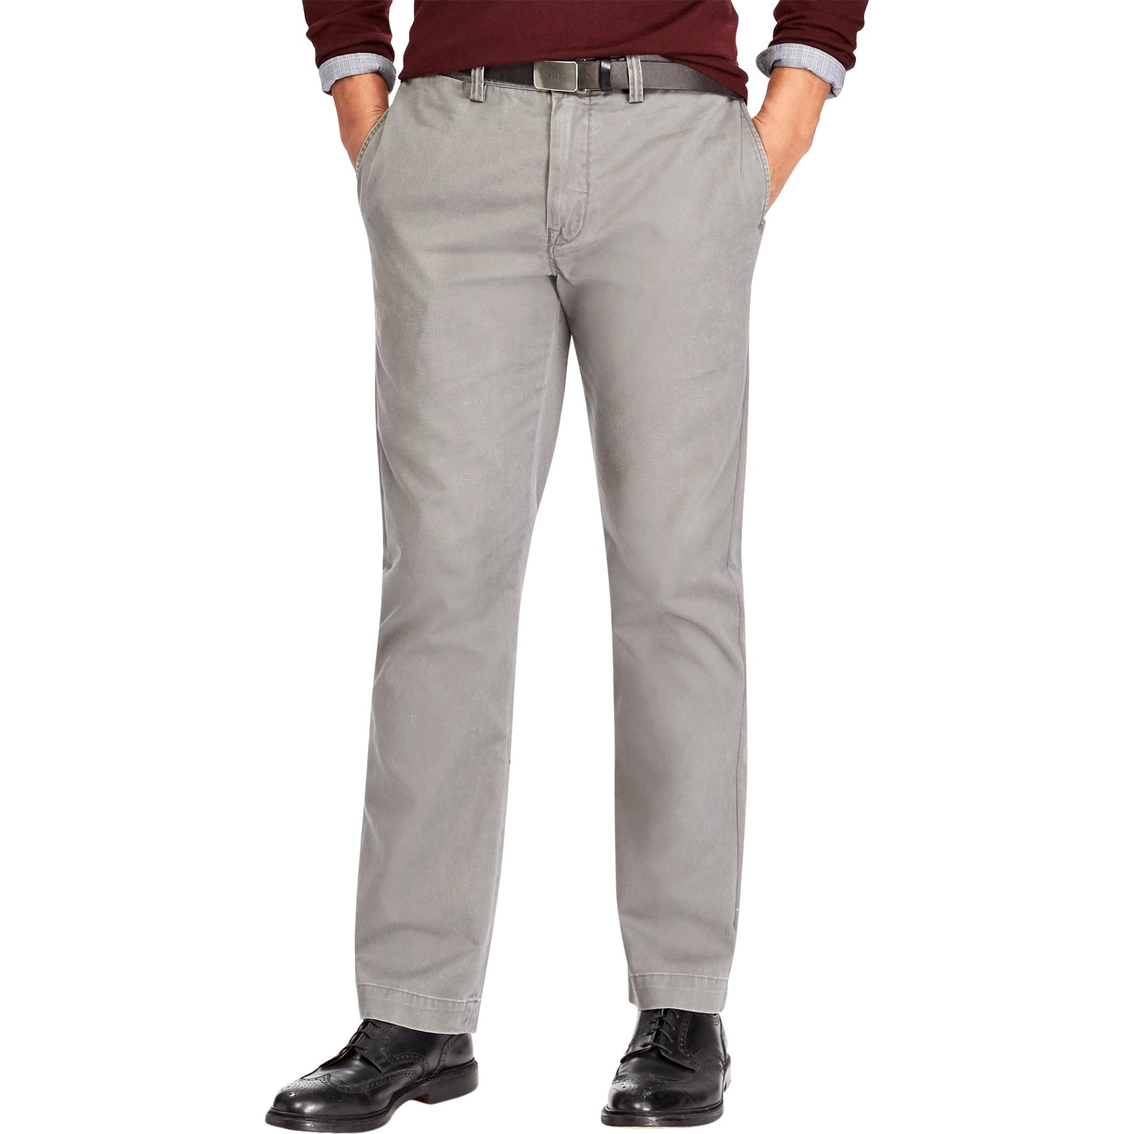 Cotton Fit Polo Pants Classic Chino Lauren Ralph DY2HIE9eW